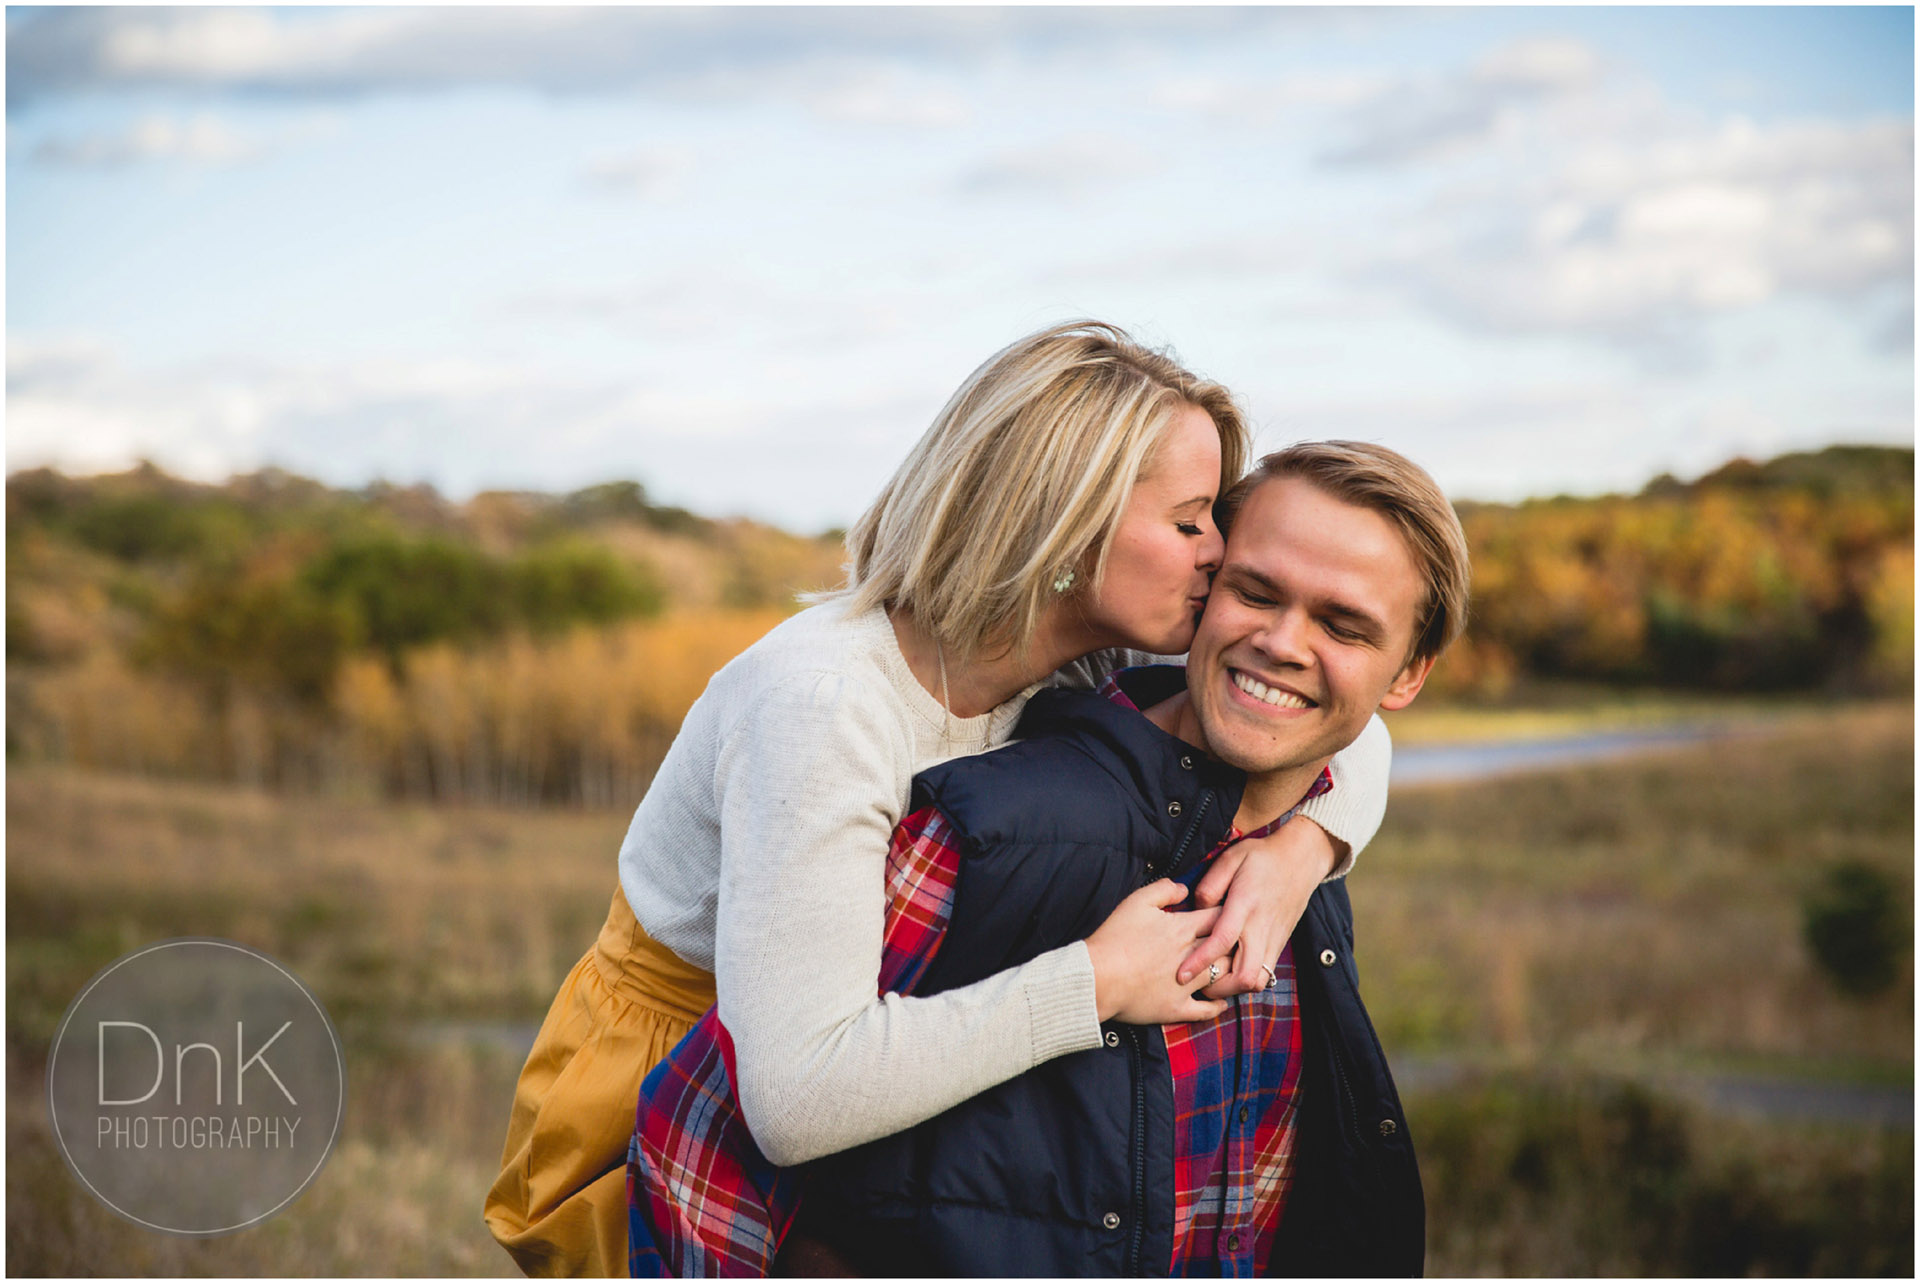 03-Fall-Engagement-Minnesota-DnK-Photography